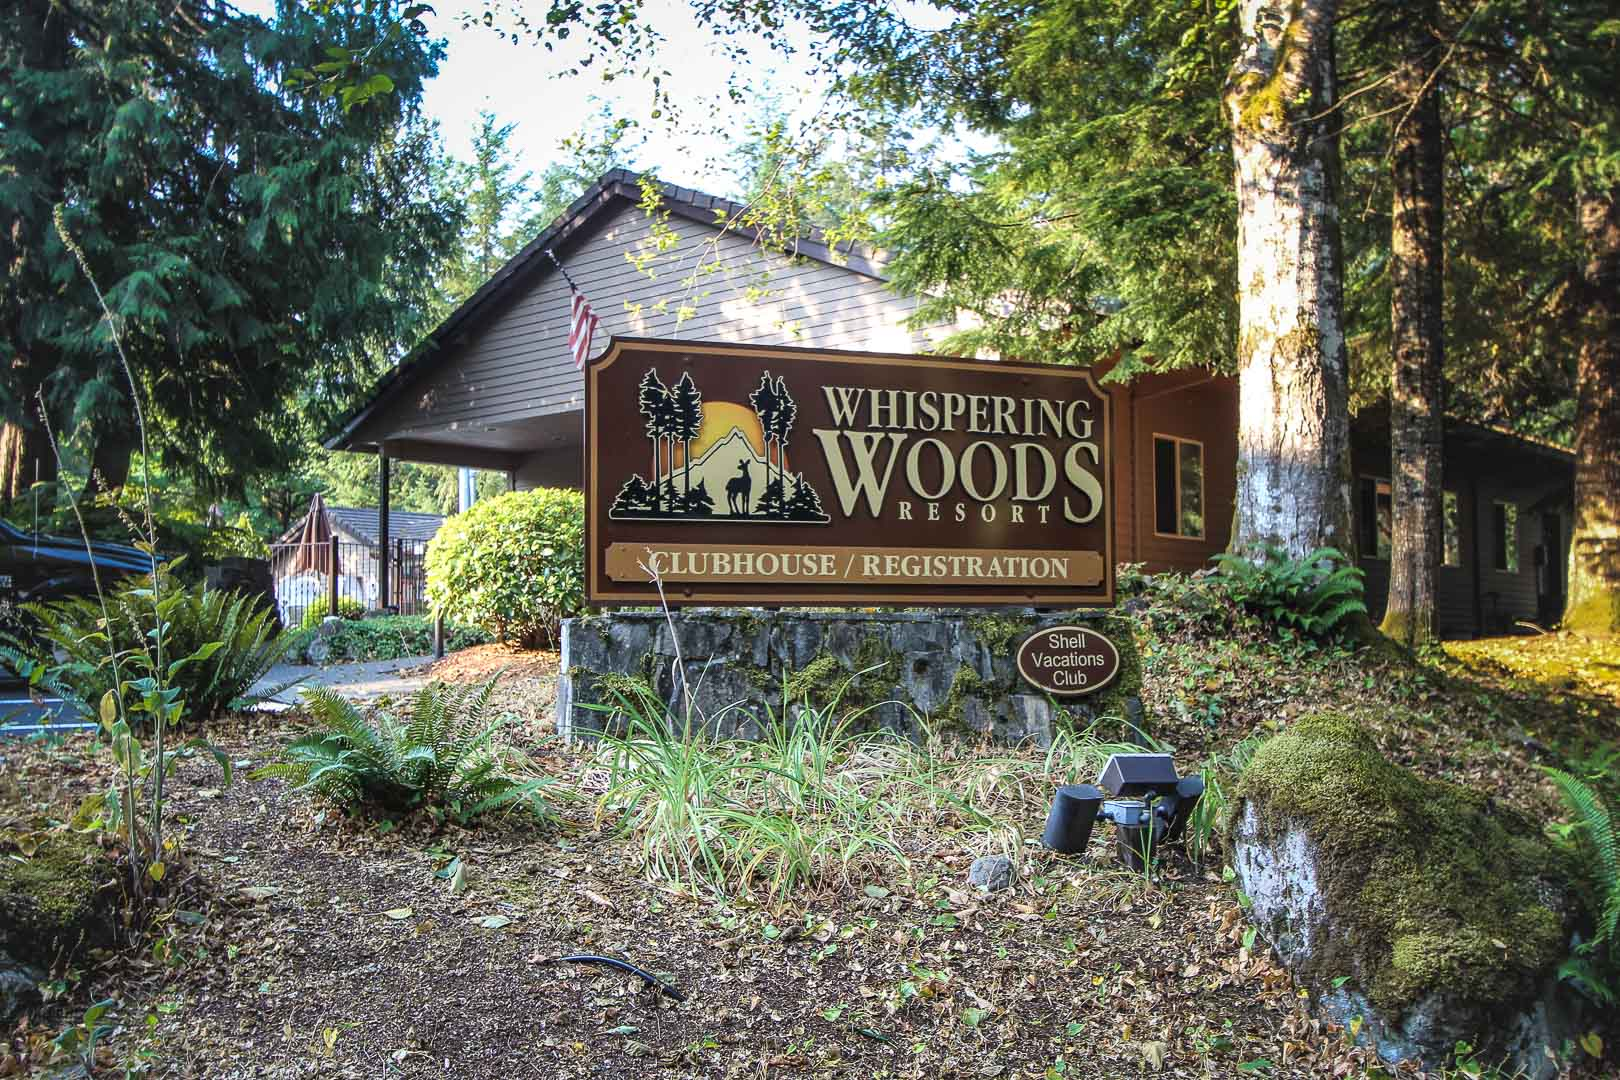 A resort signage at VRI's Whispering Woods Resort in Oregon.